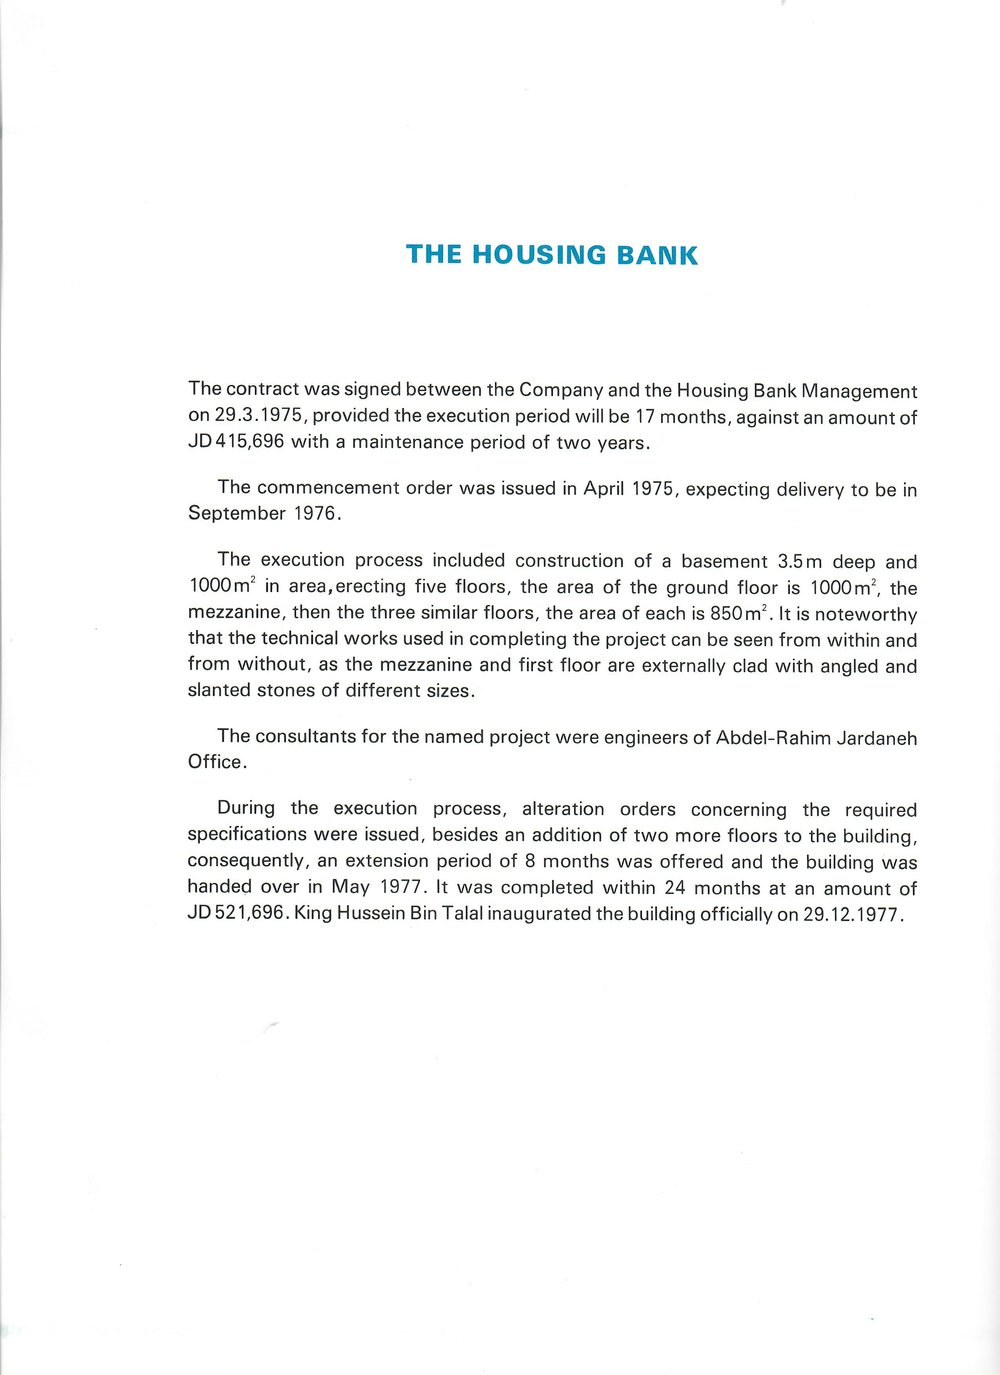 housing bank texteng.jpeg